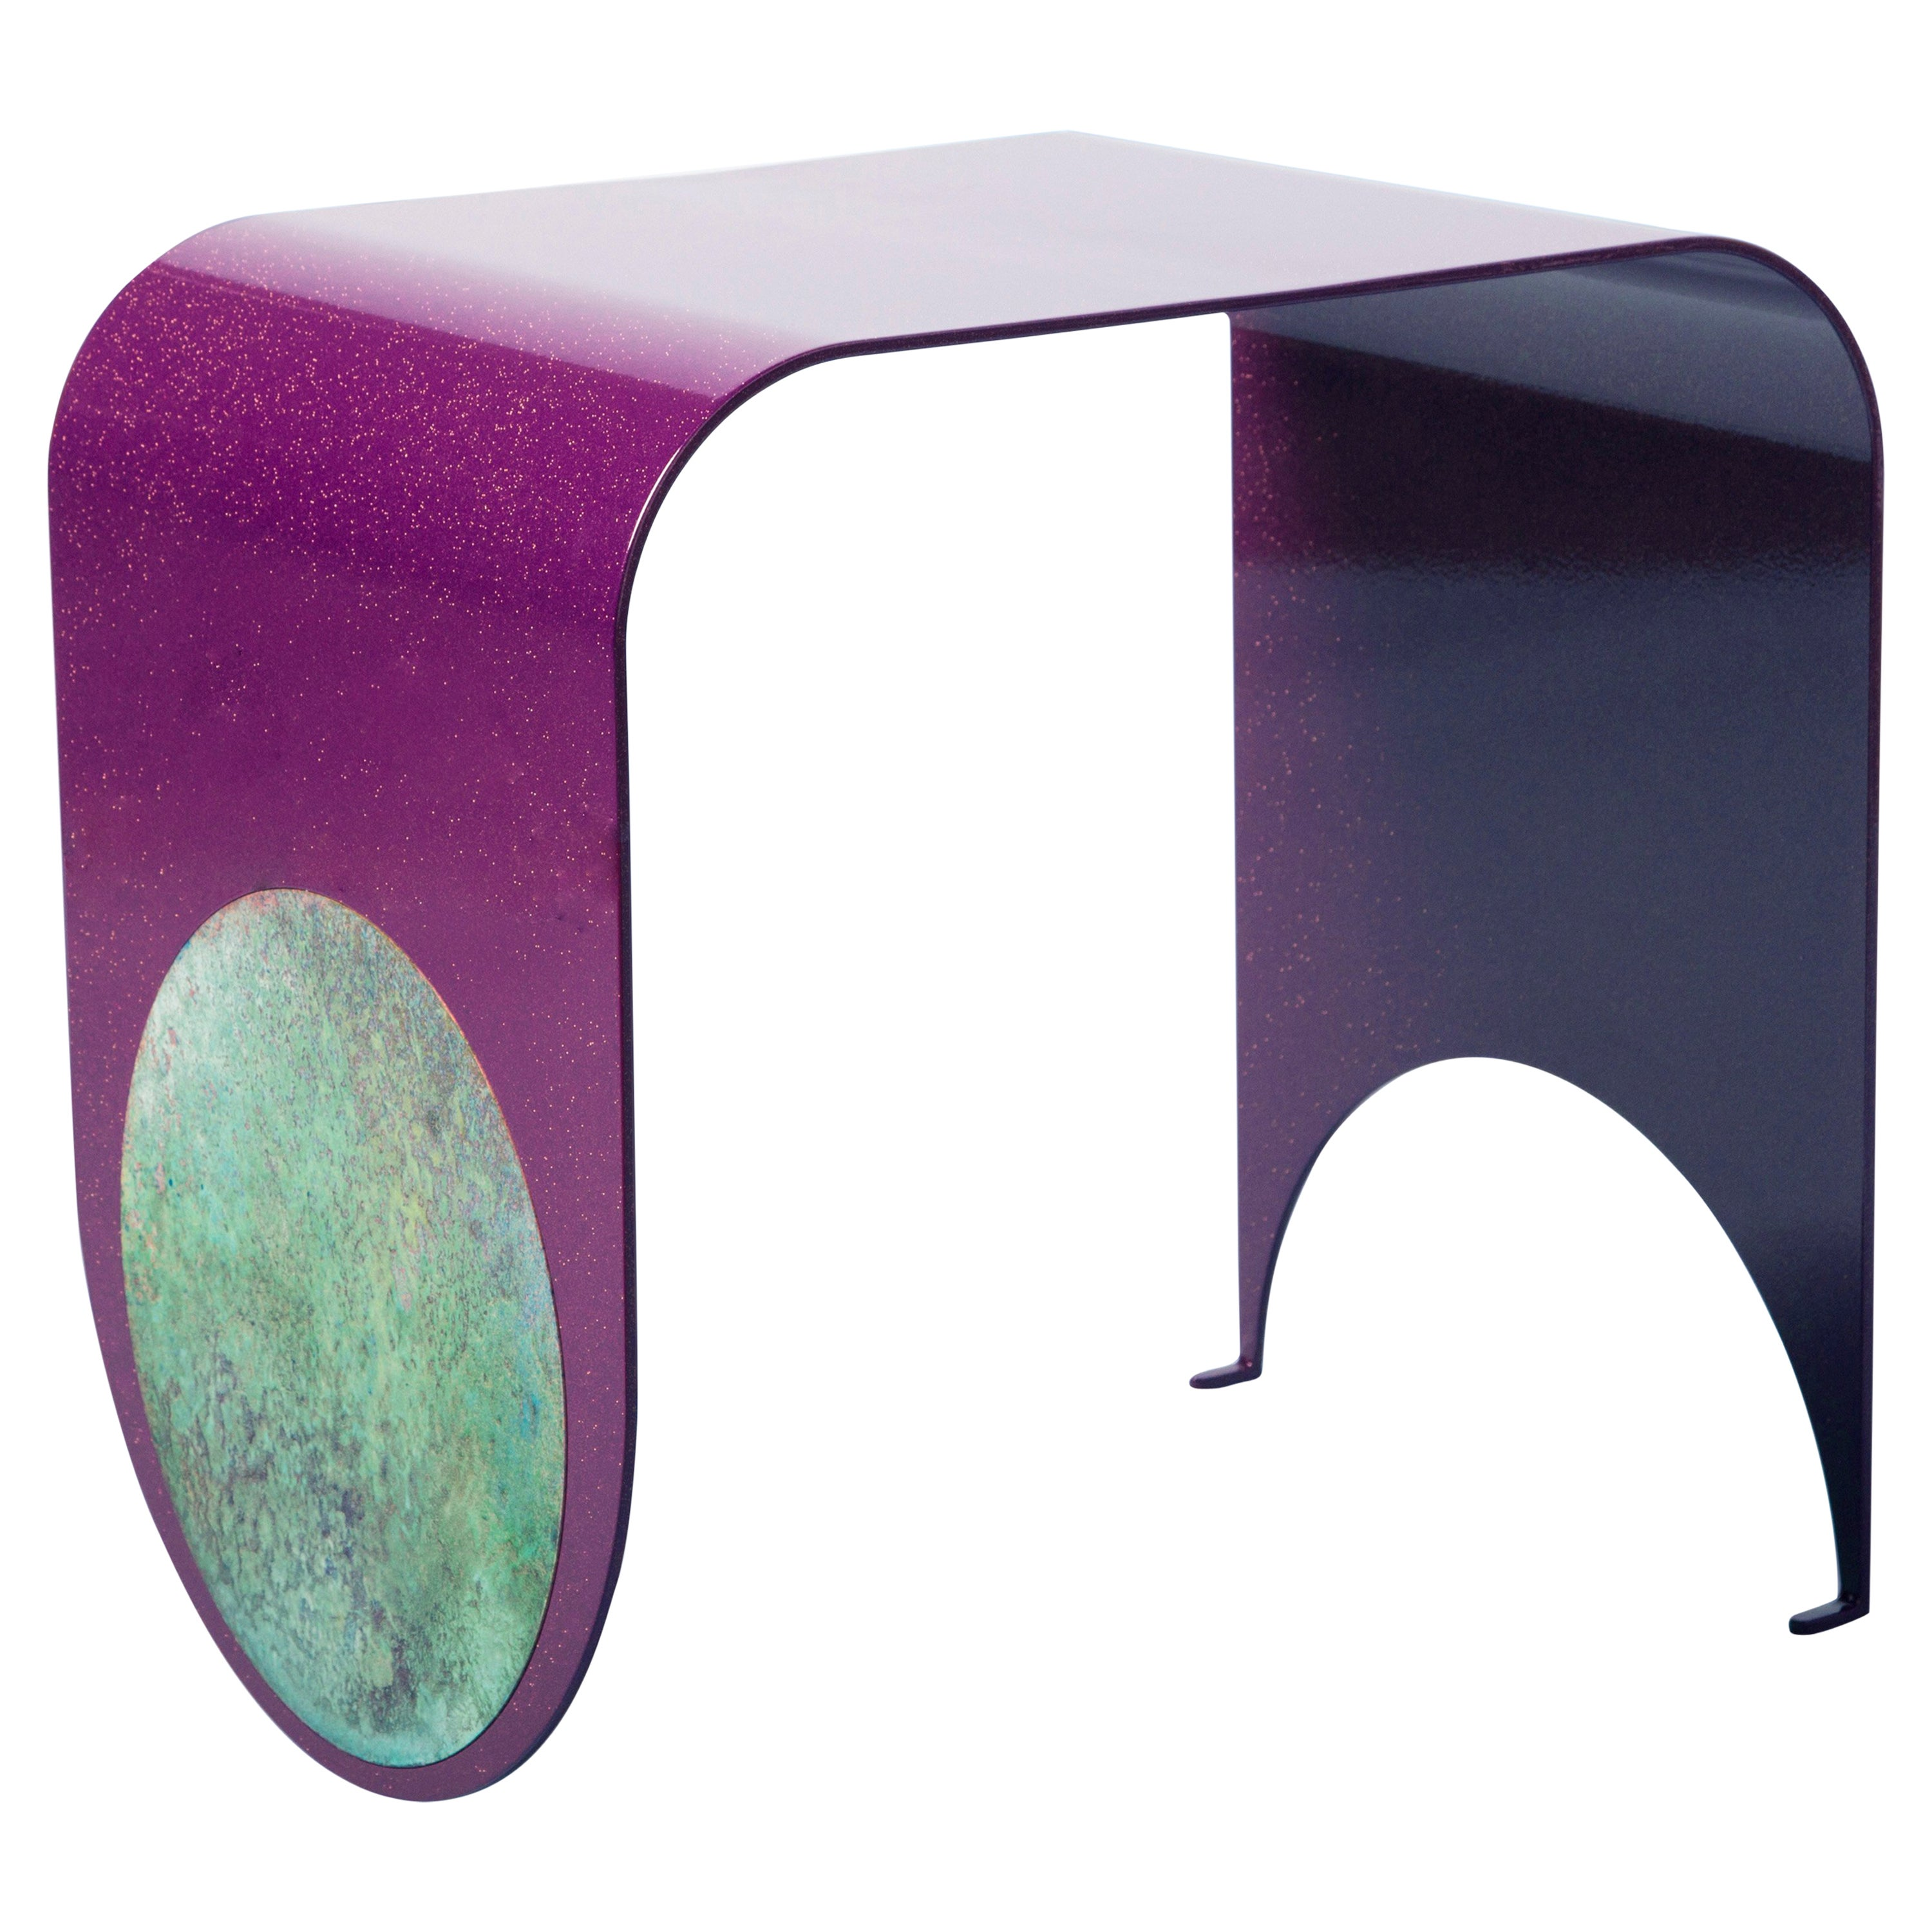 Thin Stool in Contemporary Powdered-Coated Steel with a Brass Patina Inlay